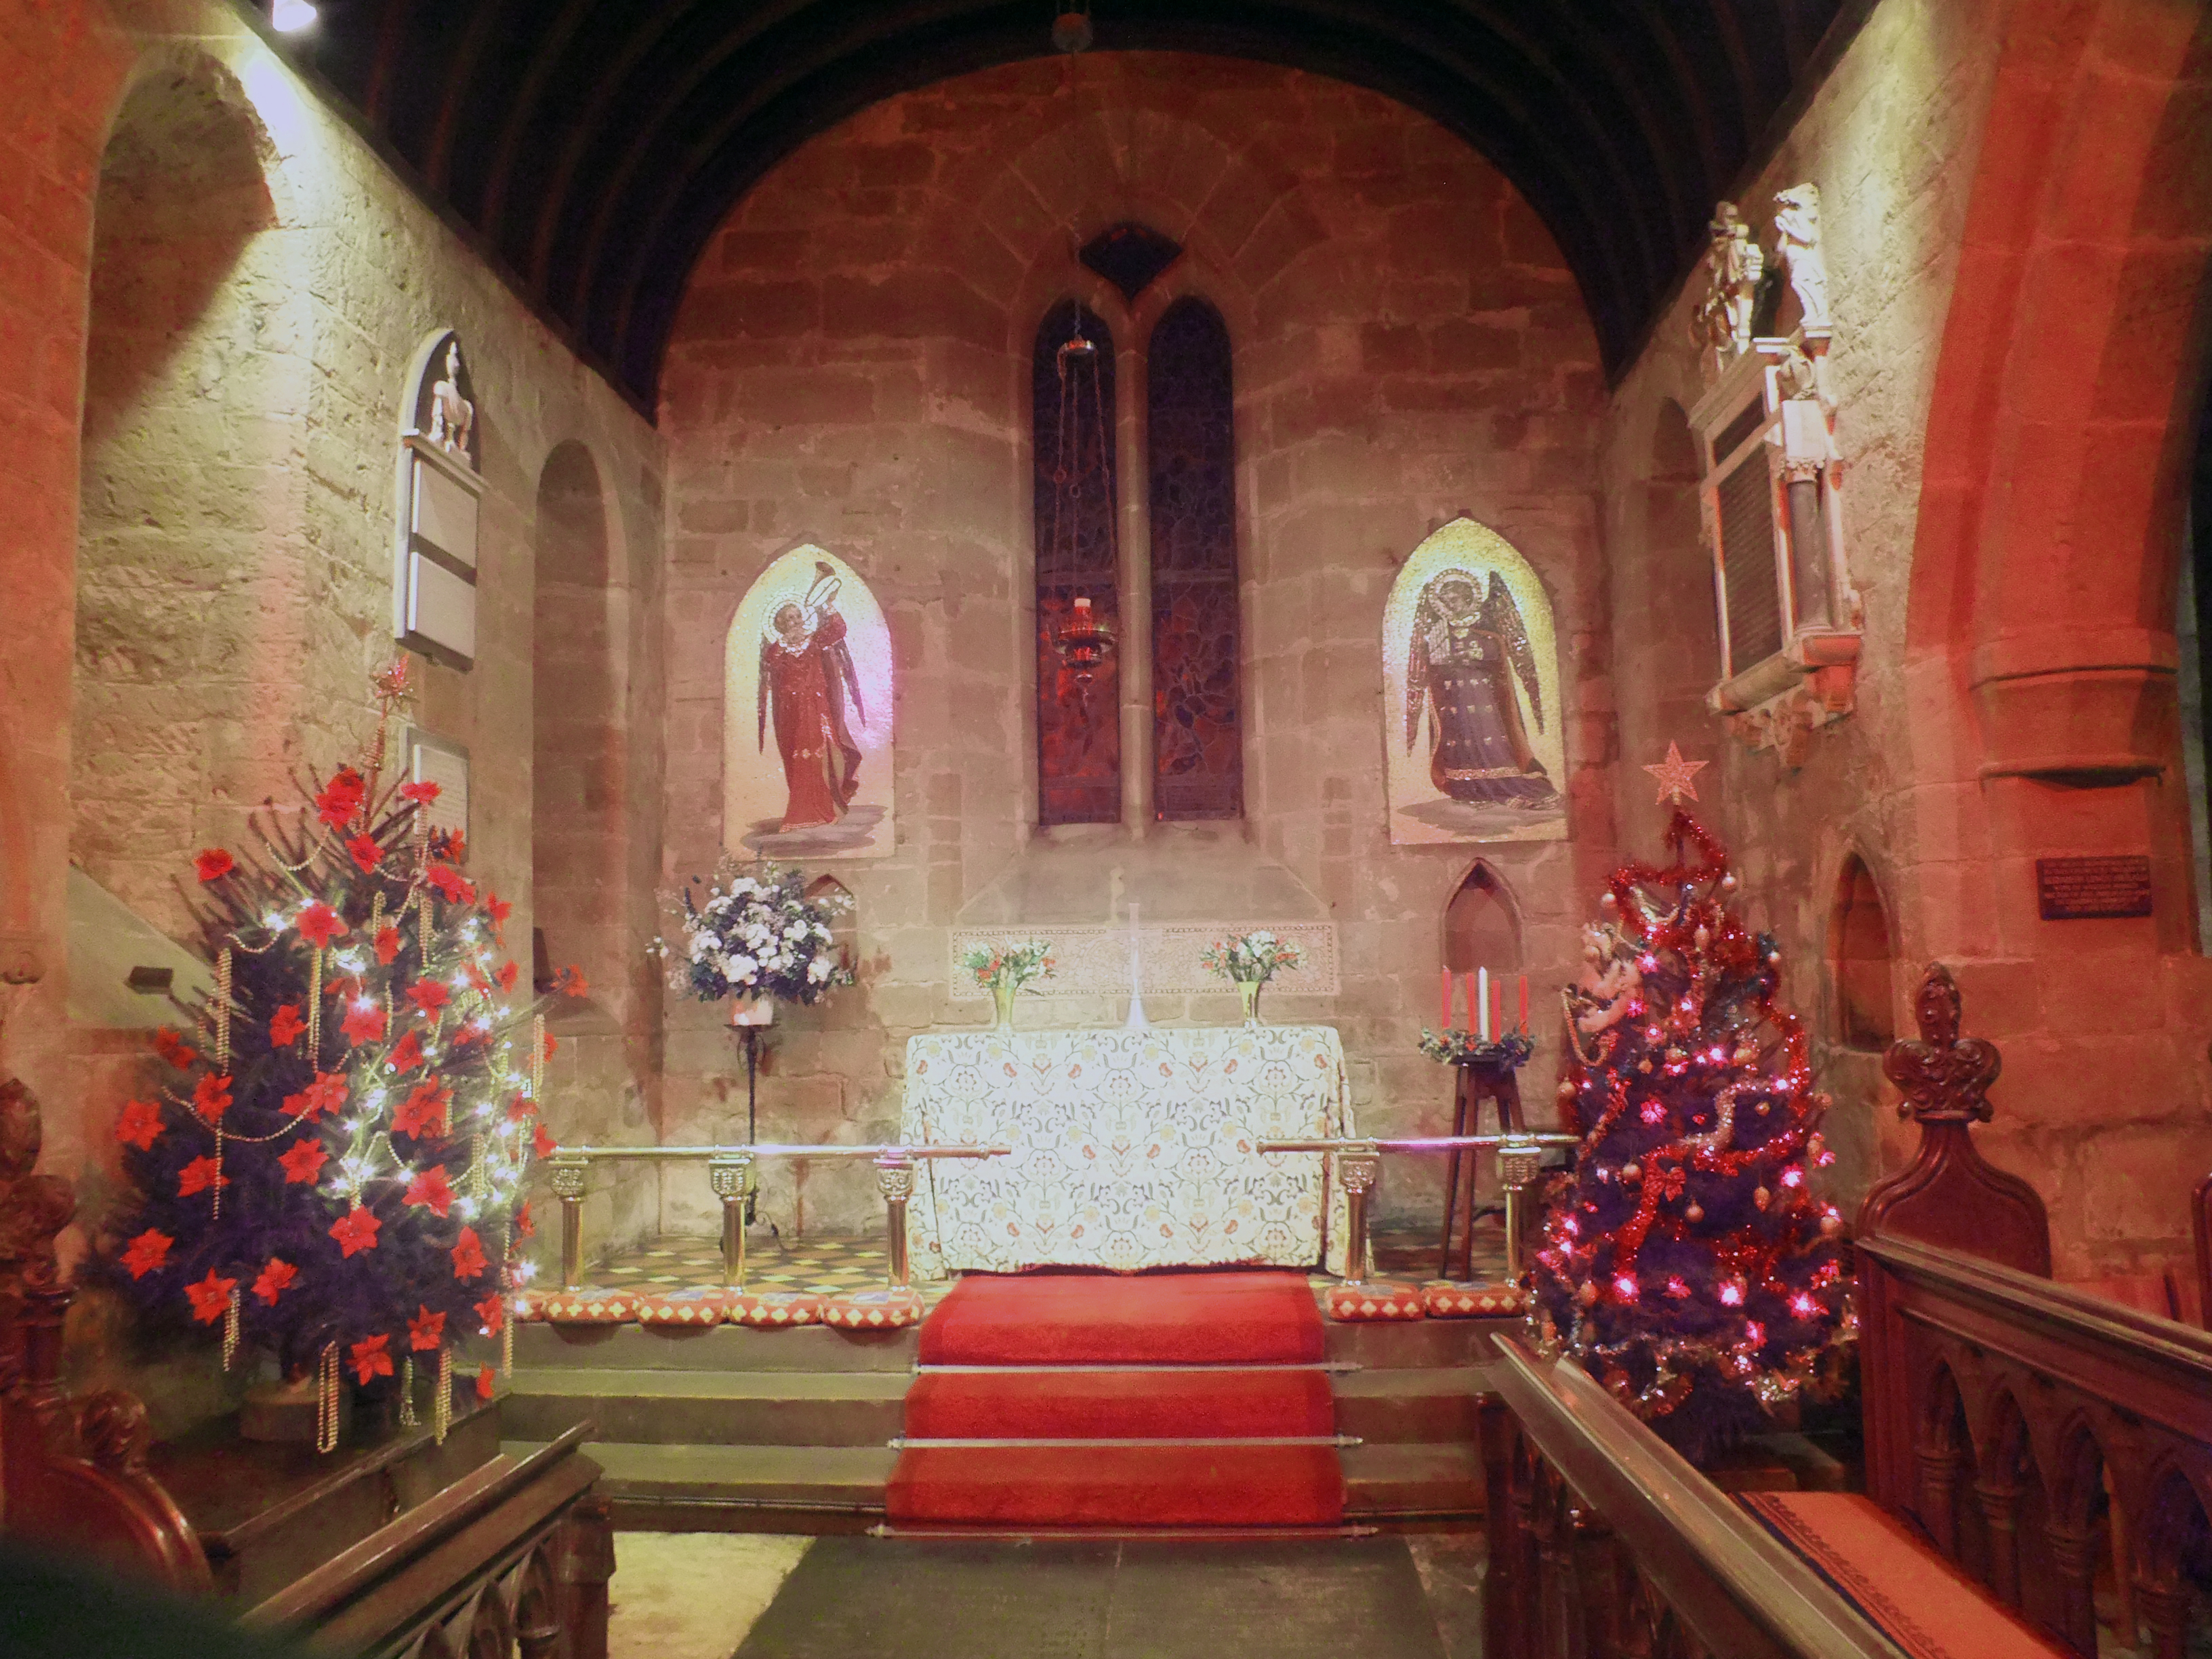 St Martin's Church at Christmas 2016.